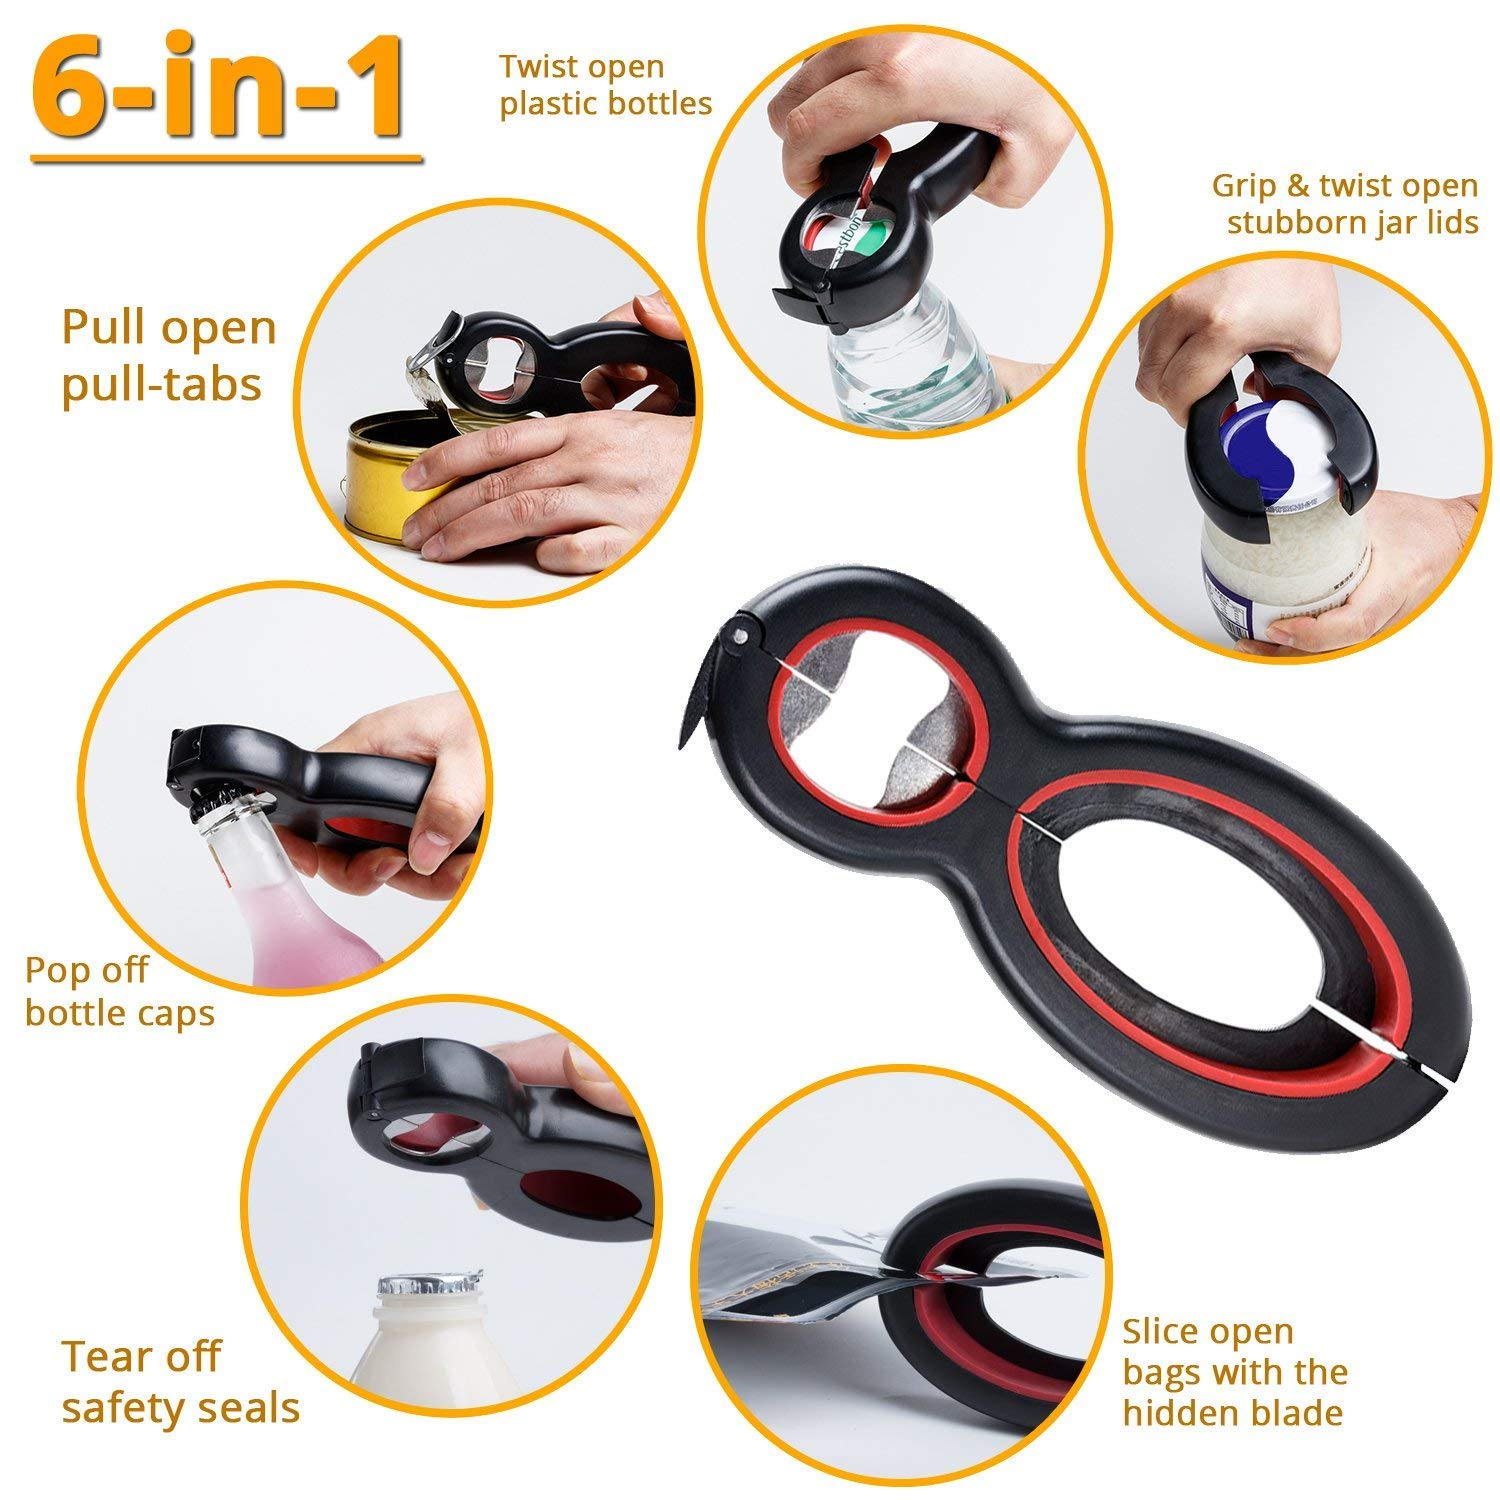 Seniors with Arthritis Twist Off Lid Hand Weakness Can Bottle Opener Soda and Jar Openers 5-in-1 and 6-in-1 2 pack Jar Opener for Seniors and Arthritic Hands